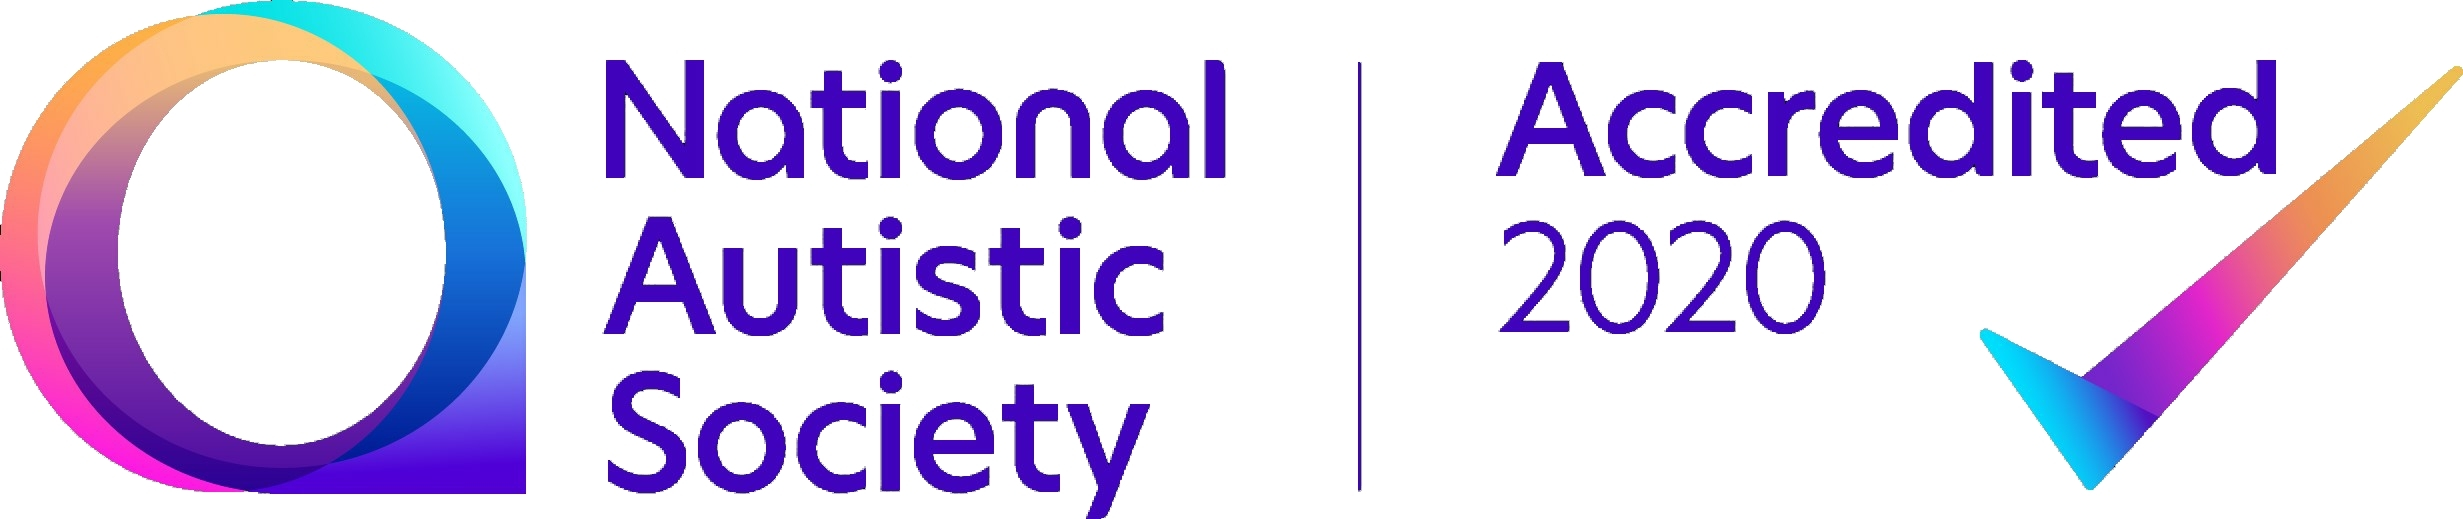 National Autistic Society Accreditation Logo